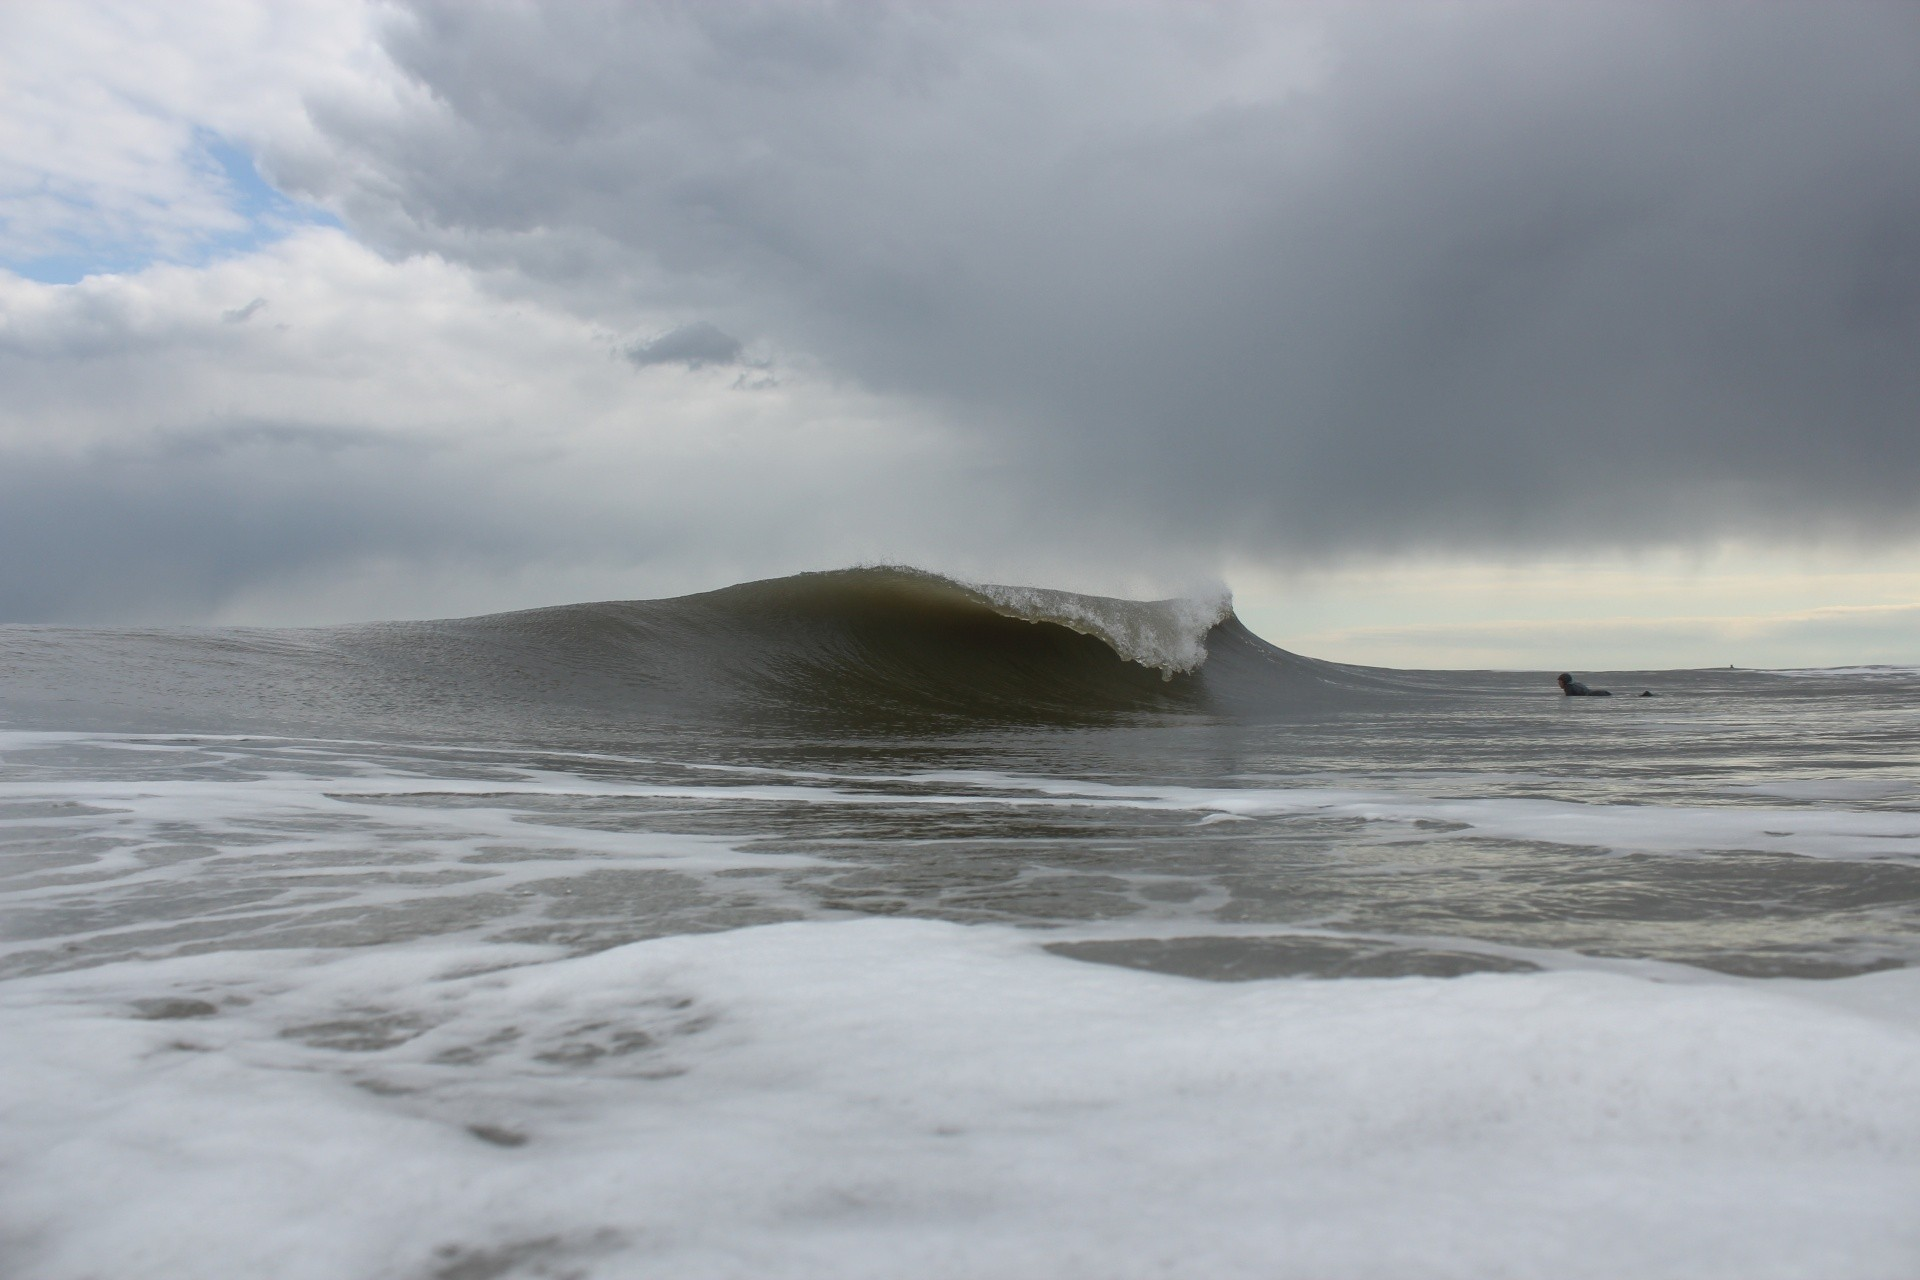 Jake Zlotnick's photo of Ocean City, NJ